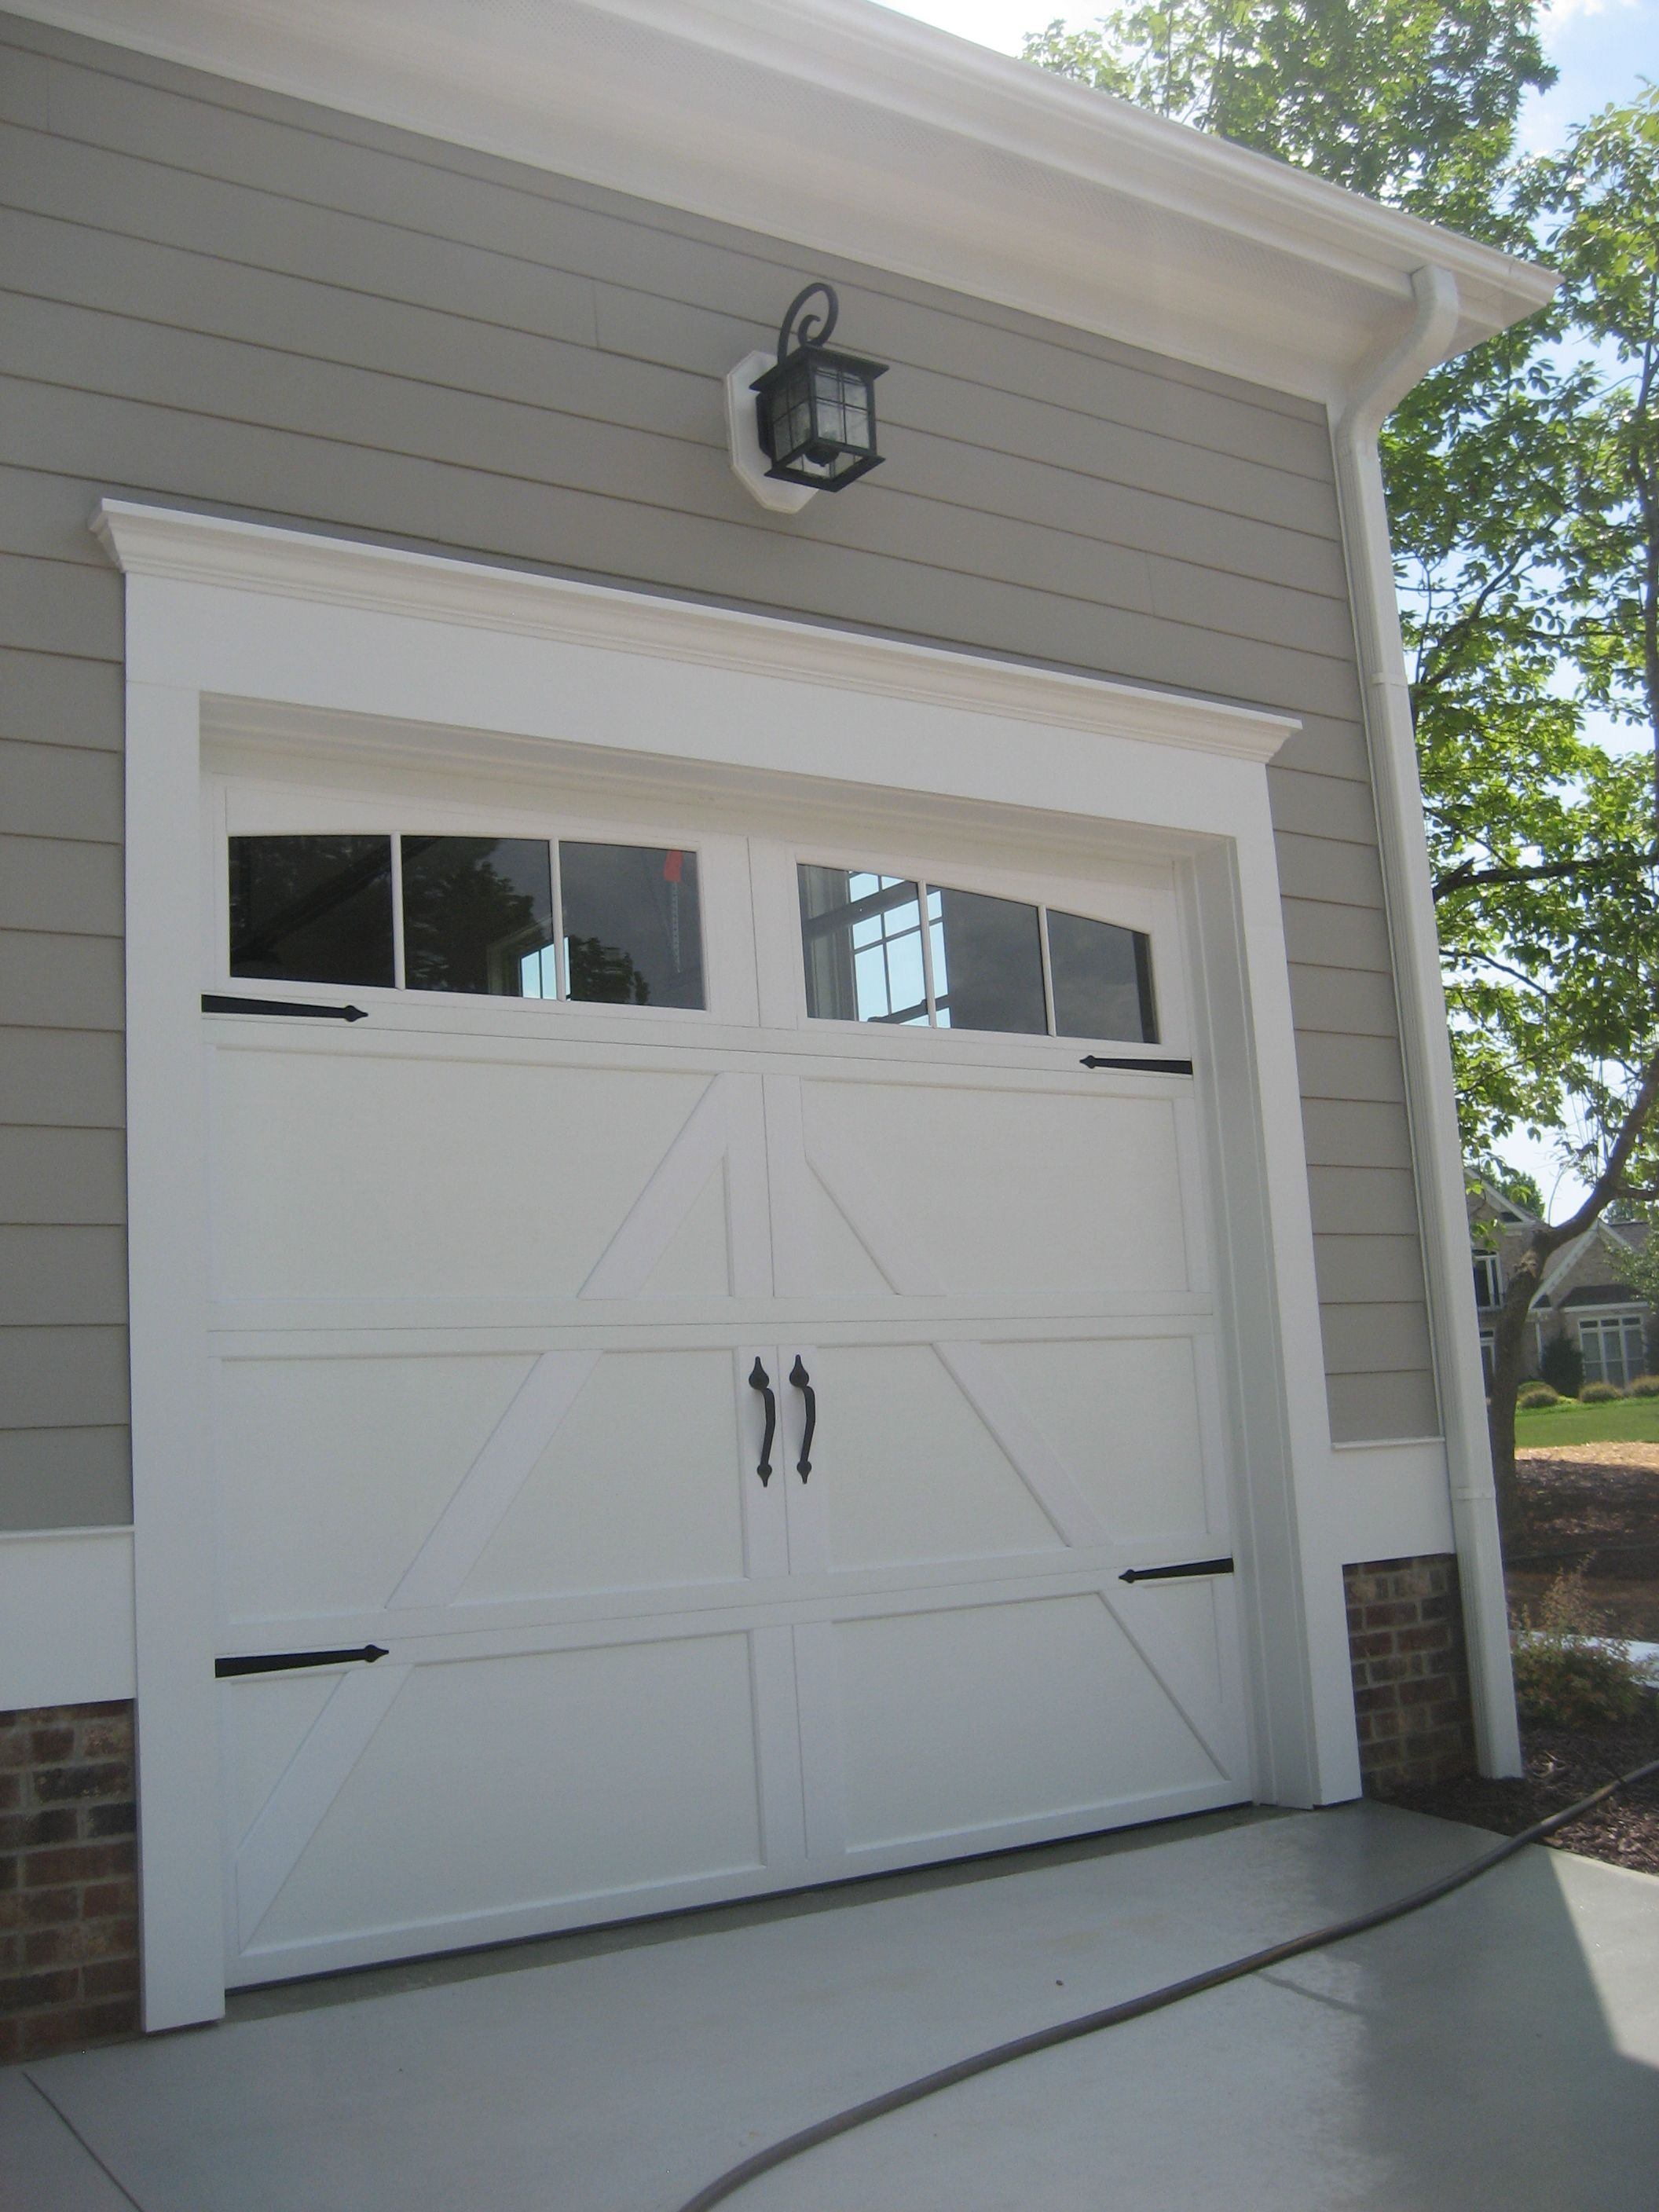 Garage door trim moulding - Add Trim To Garage Door Add Hardware To You Boring Garage Door